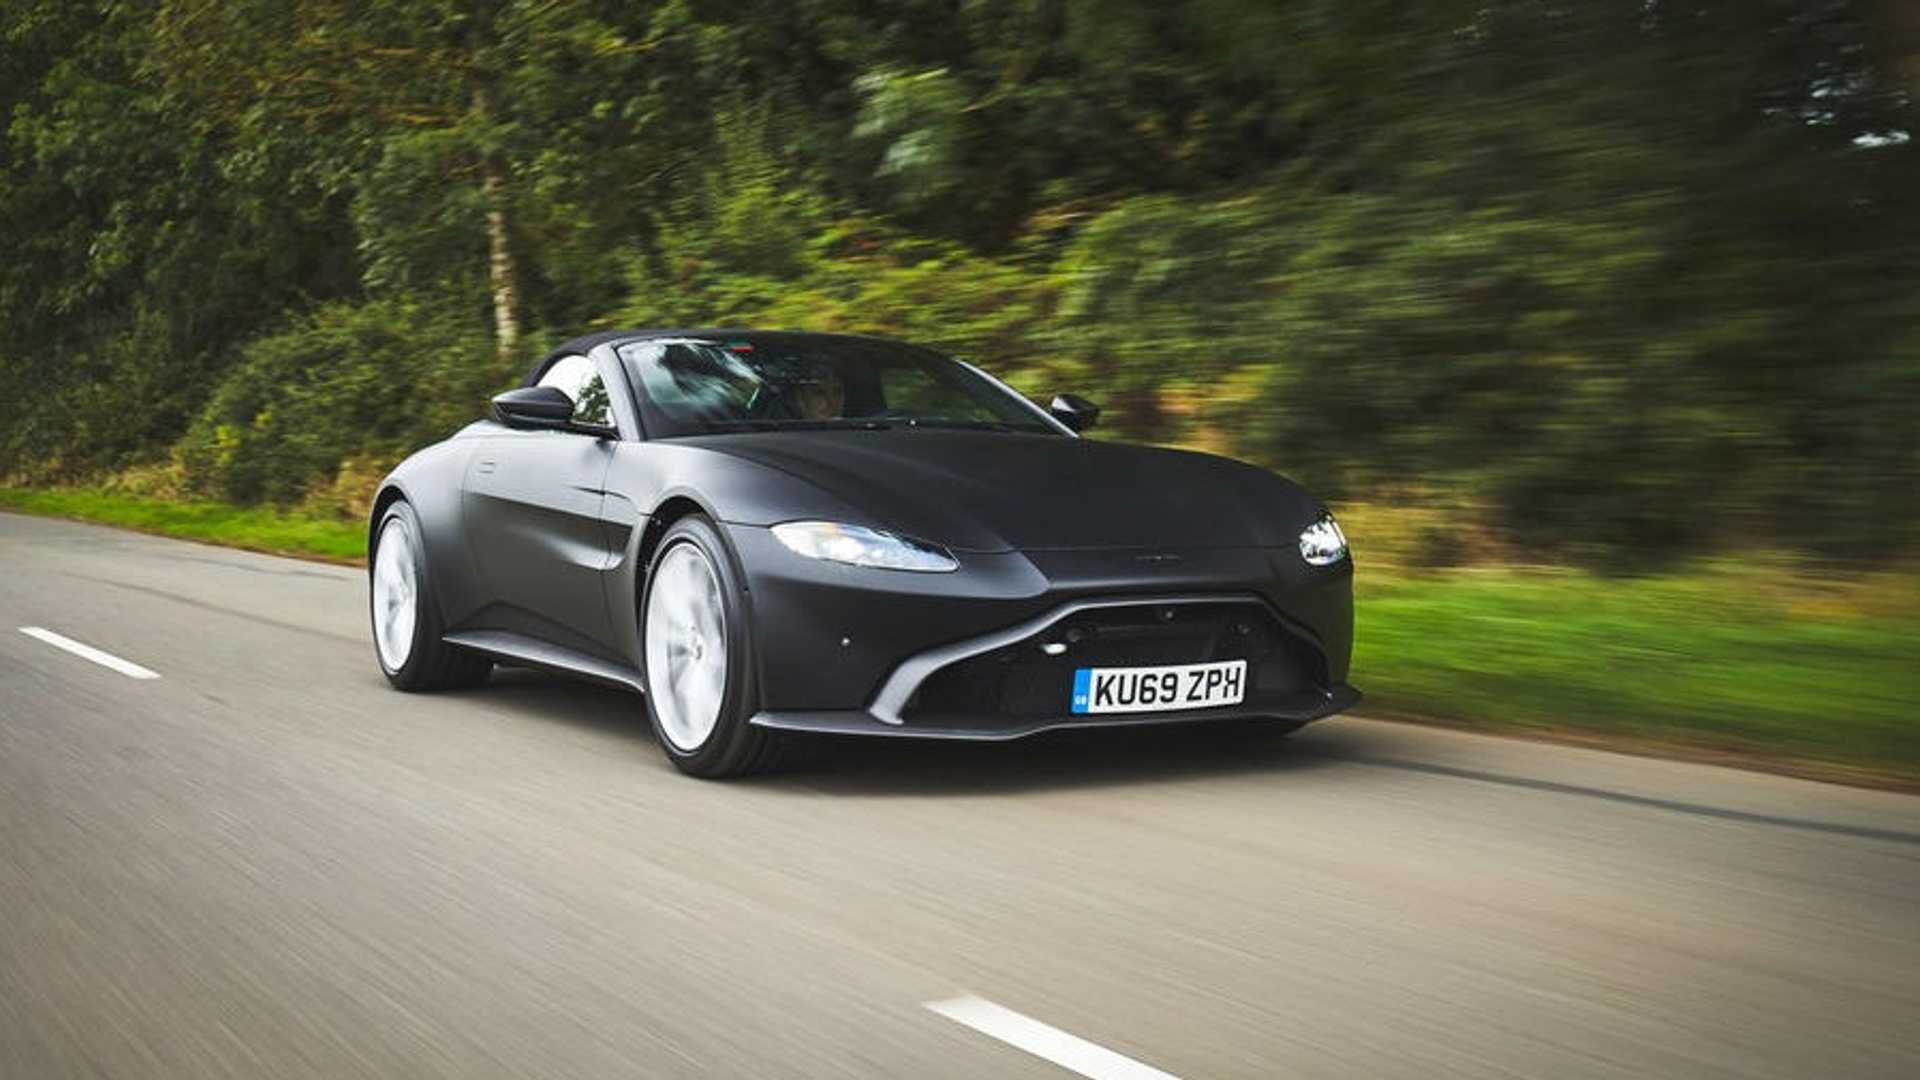 Aston Martin Vantage Roadster Previewed In Official Images 1920x1080